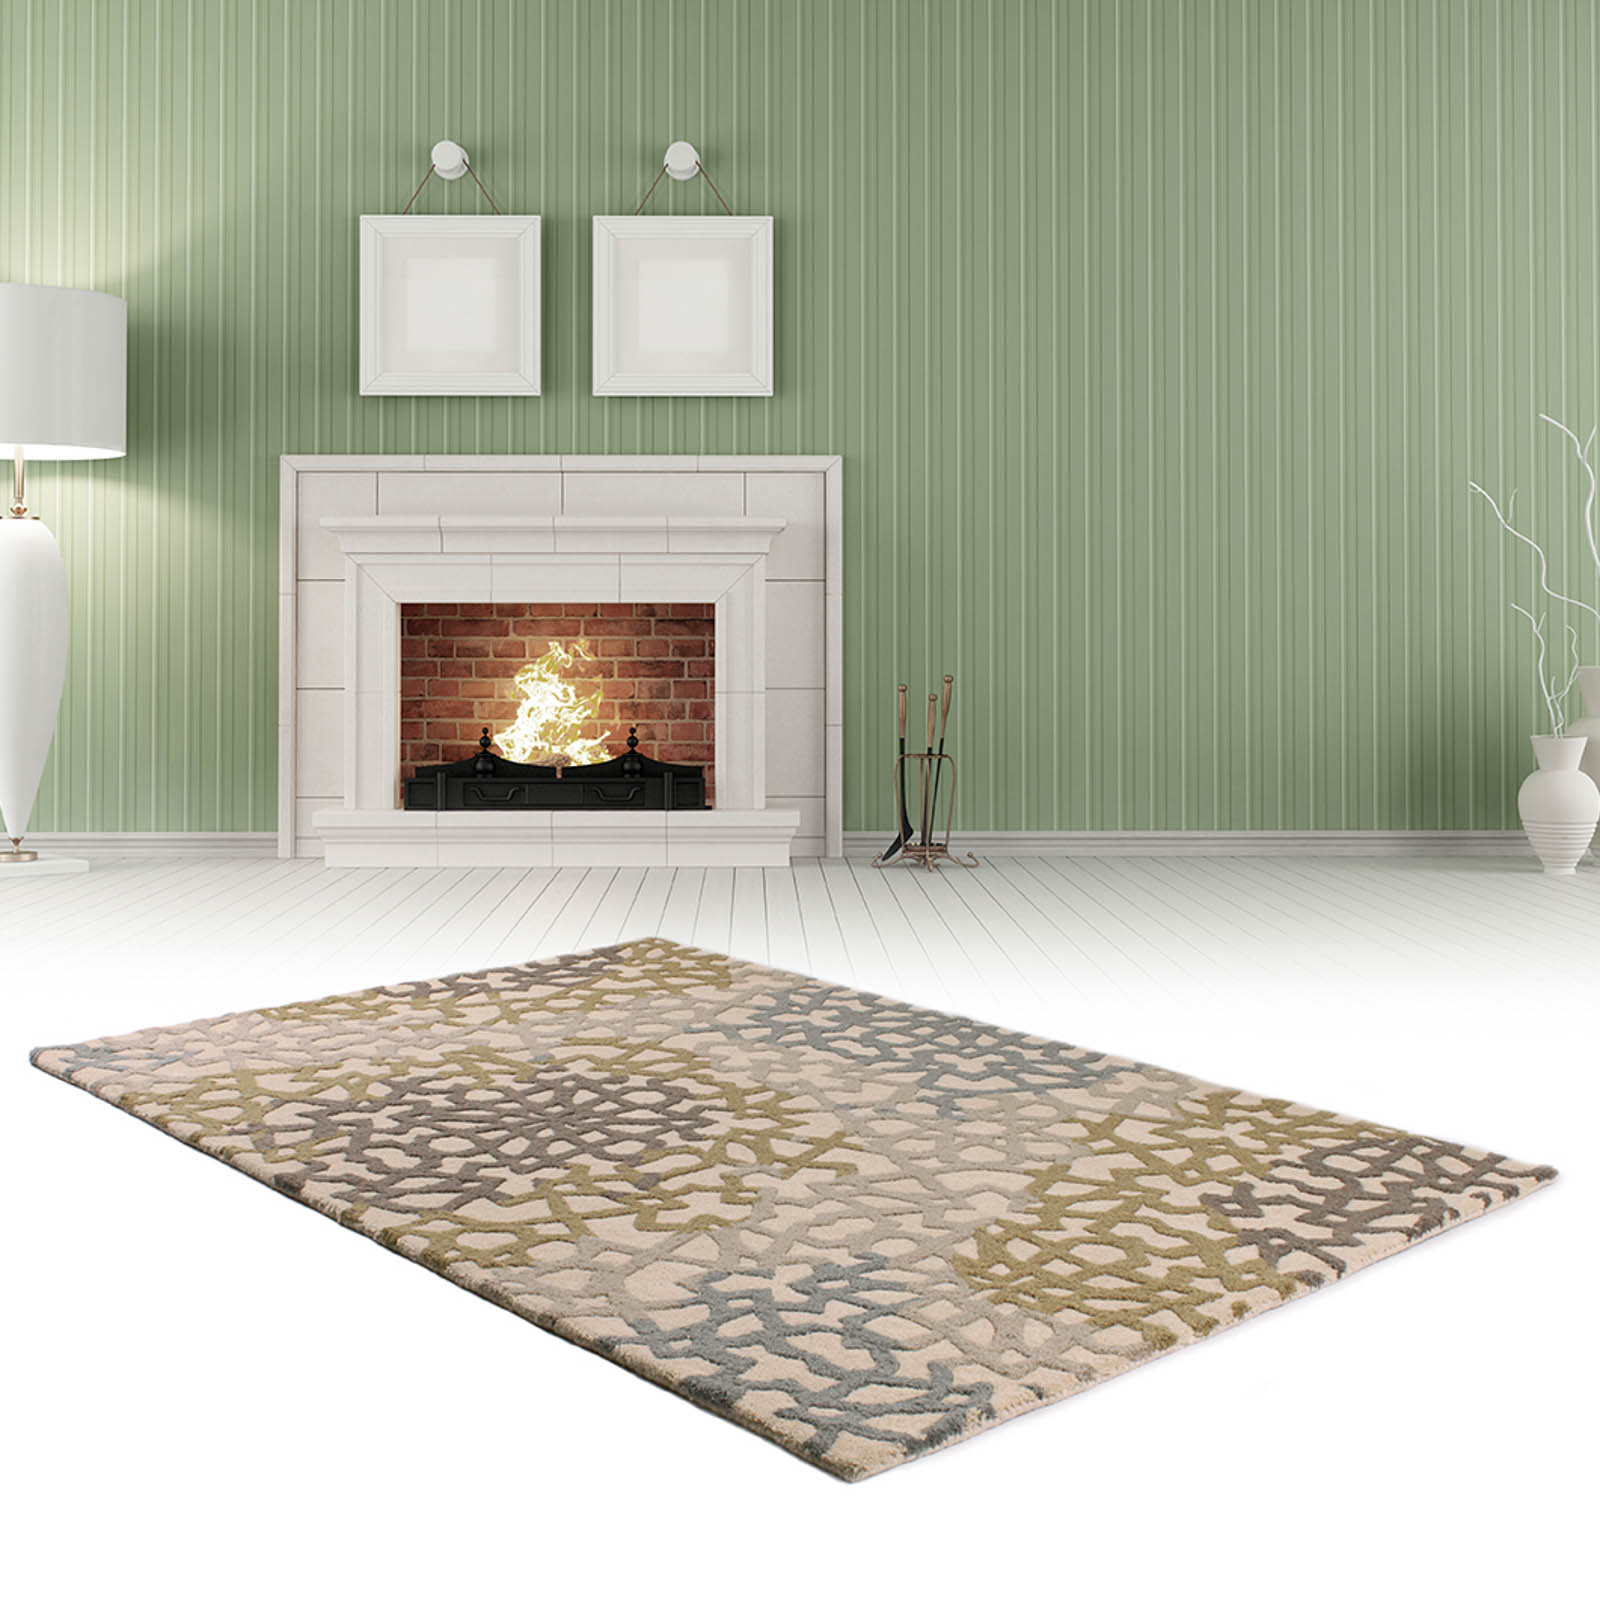 Fusion Legacy Rugs in Beige and Green